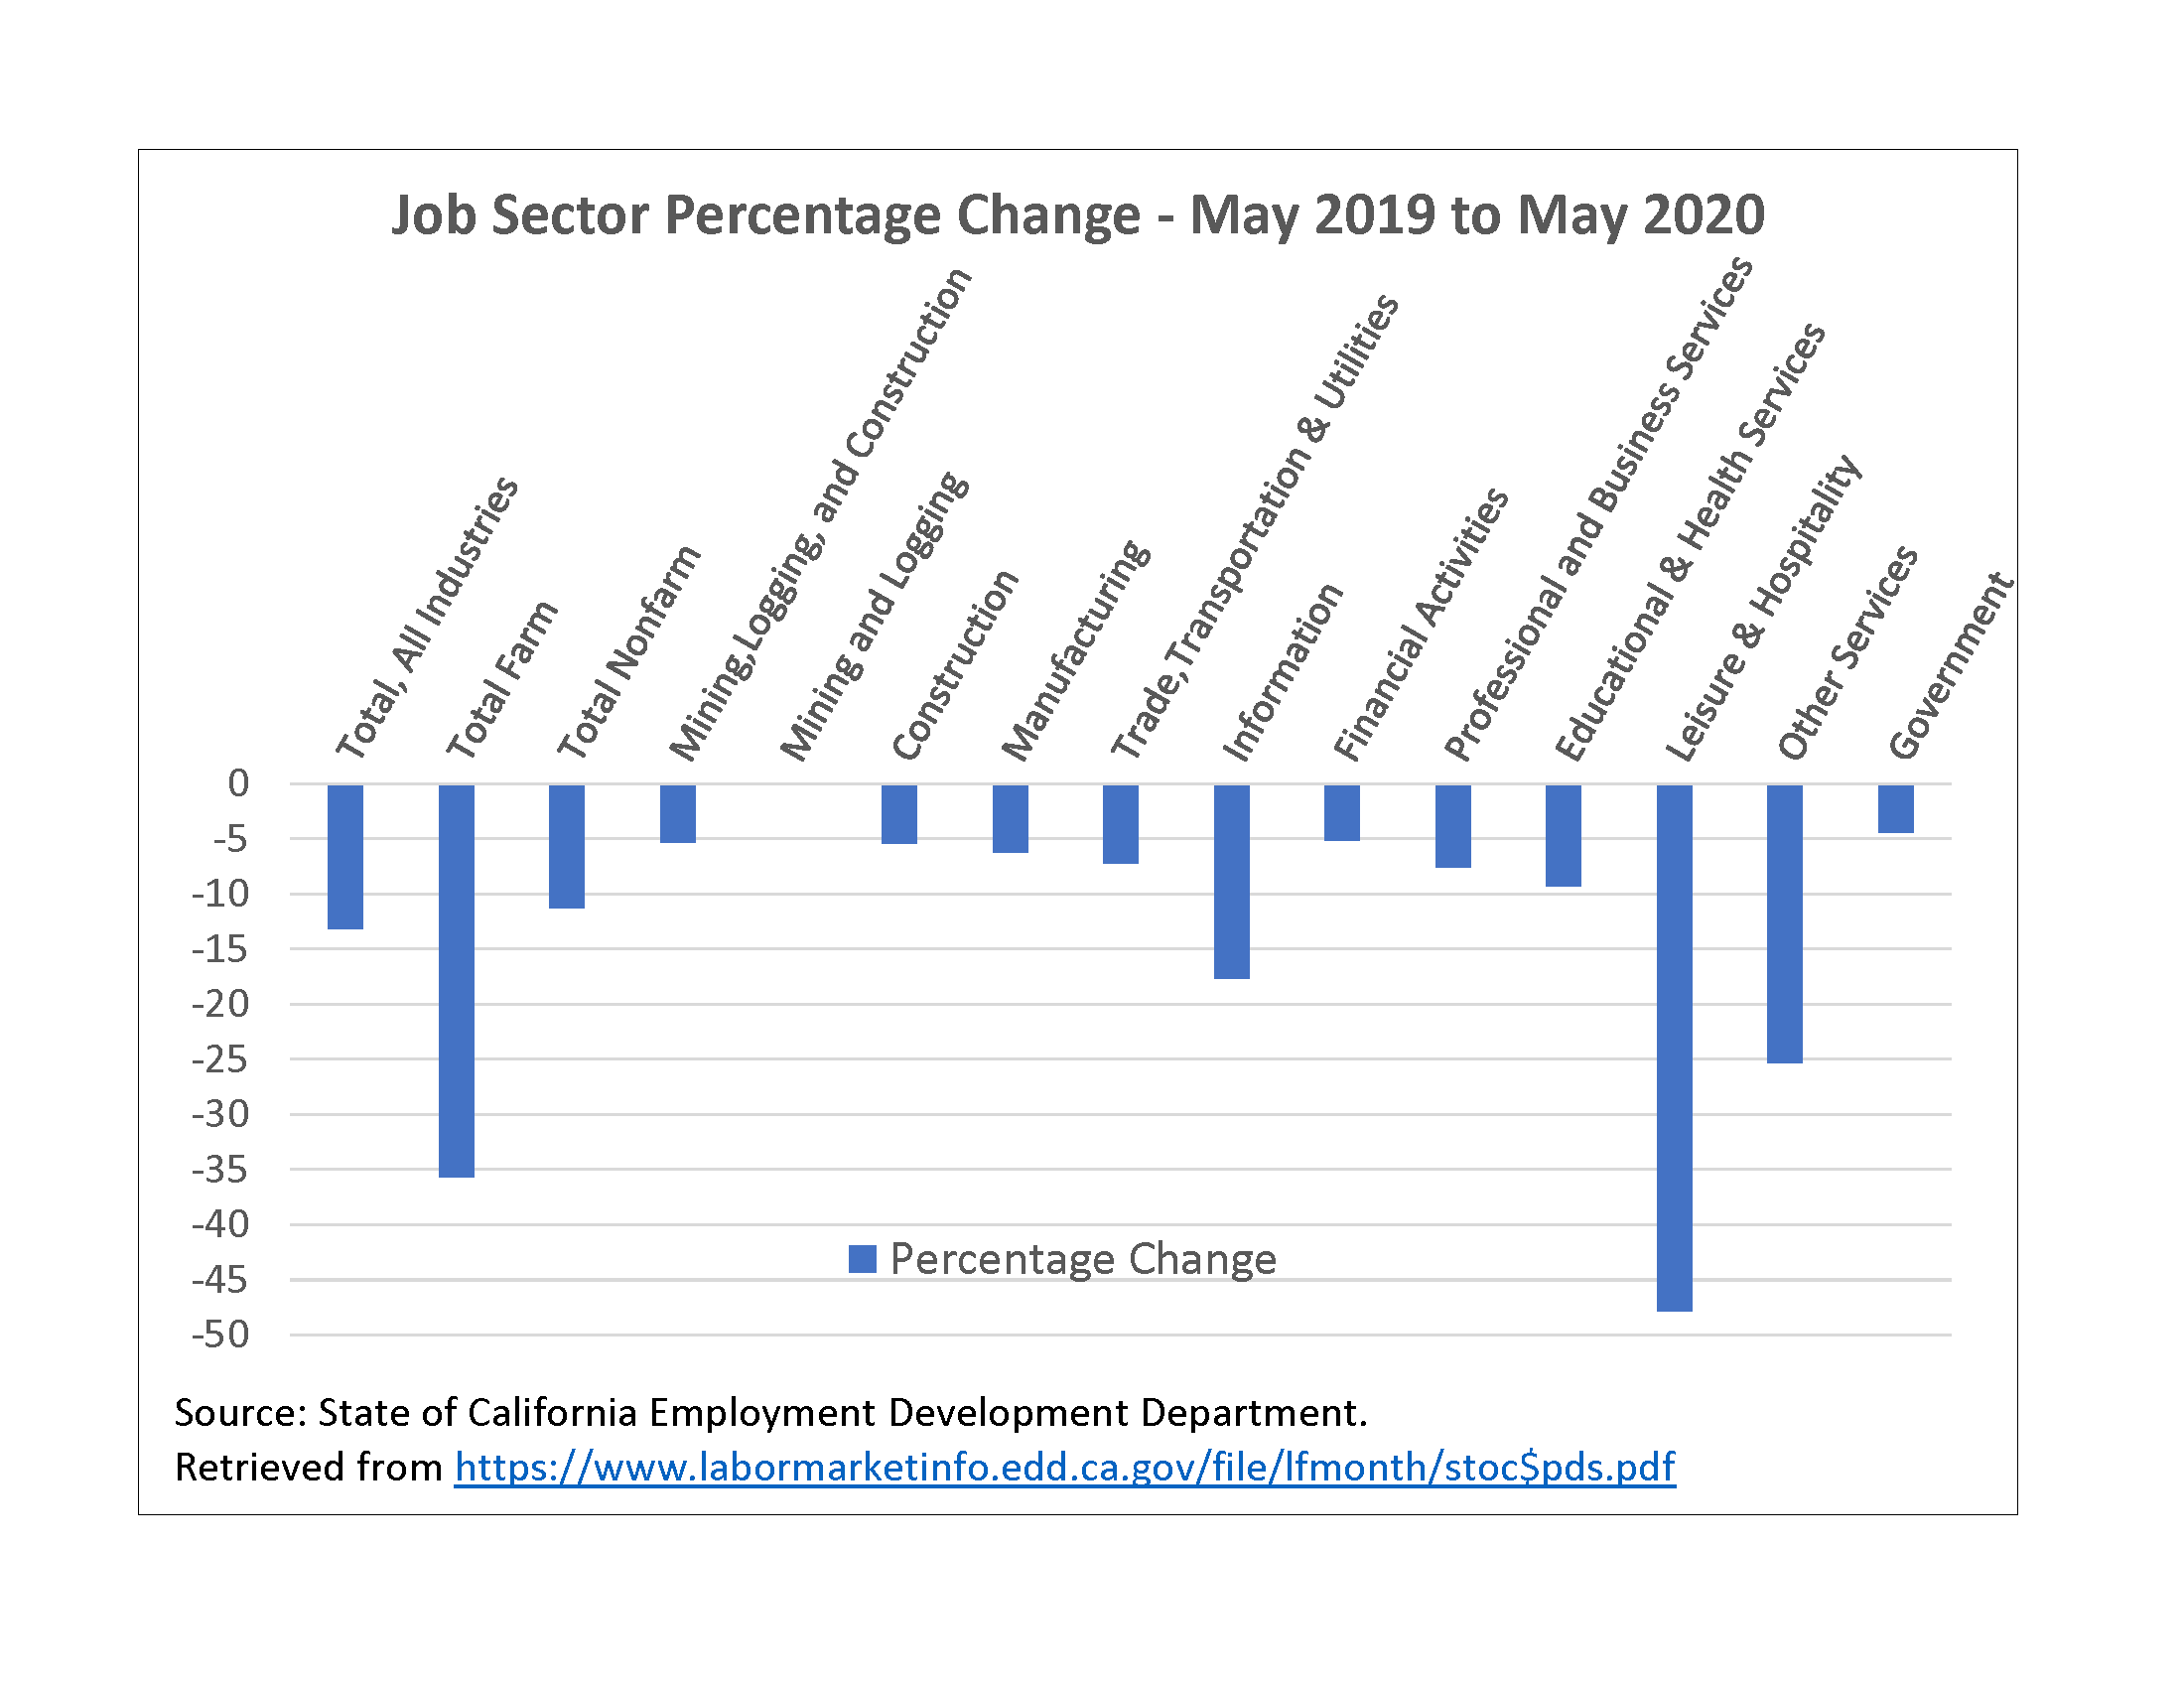 Graphic 8 - Job Sector Percentage Change